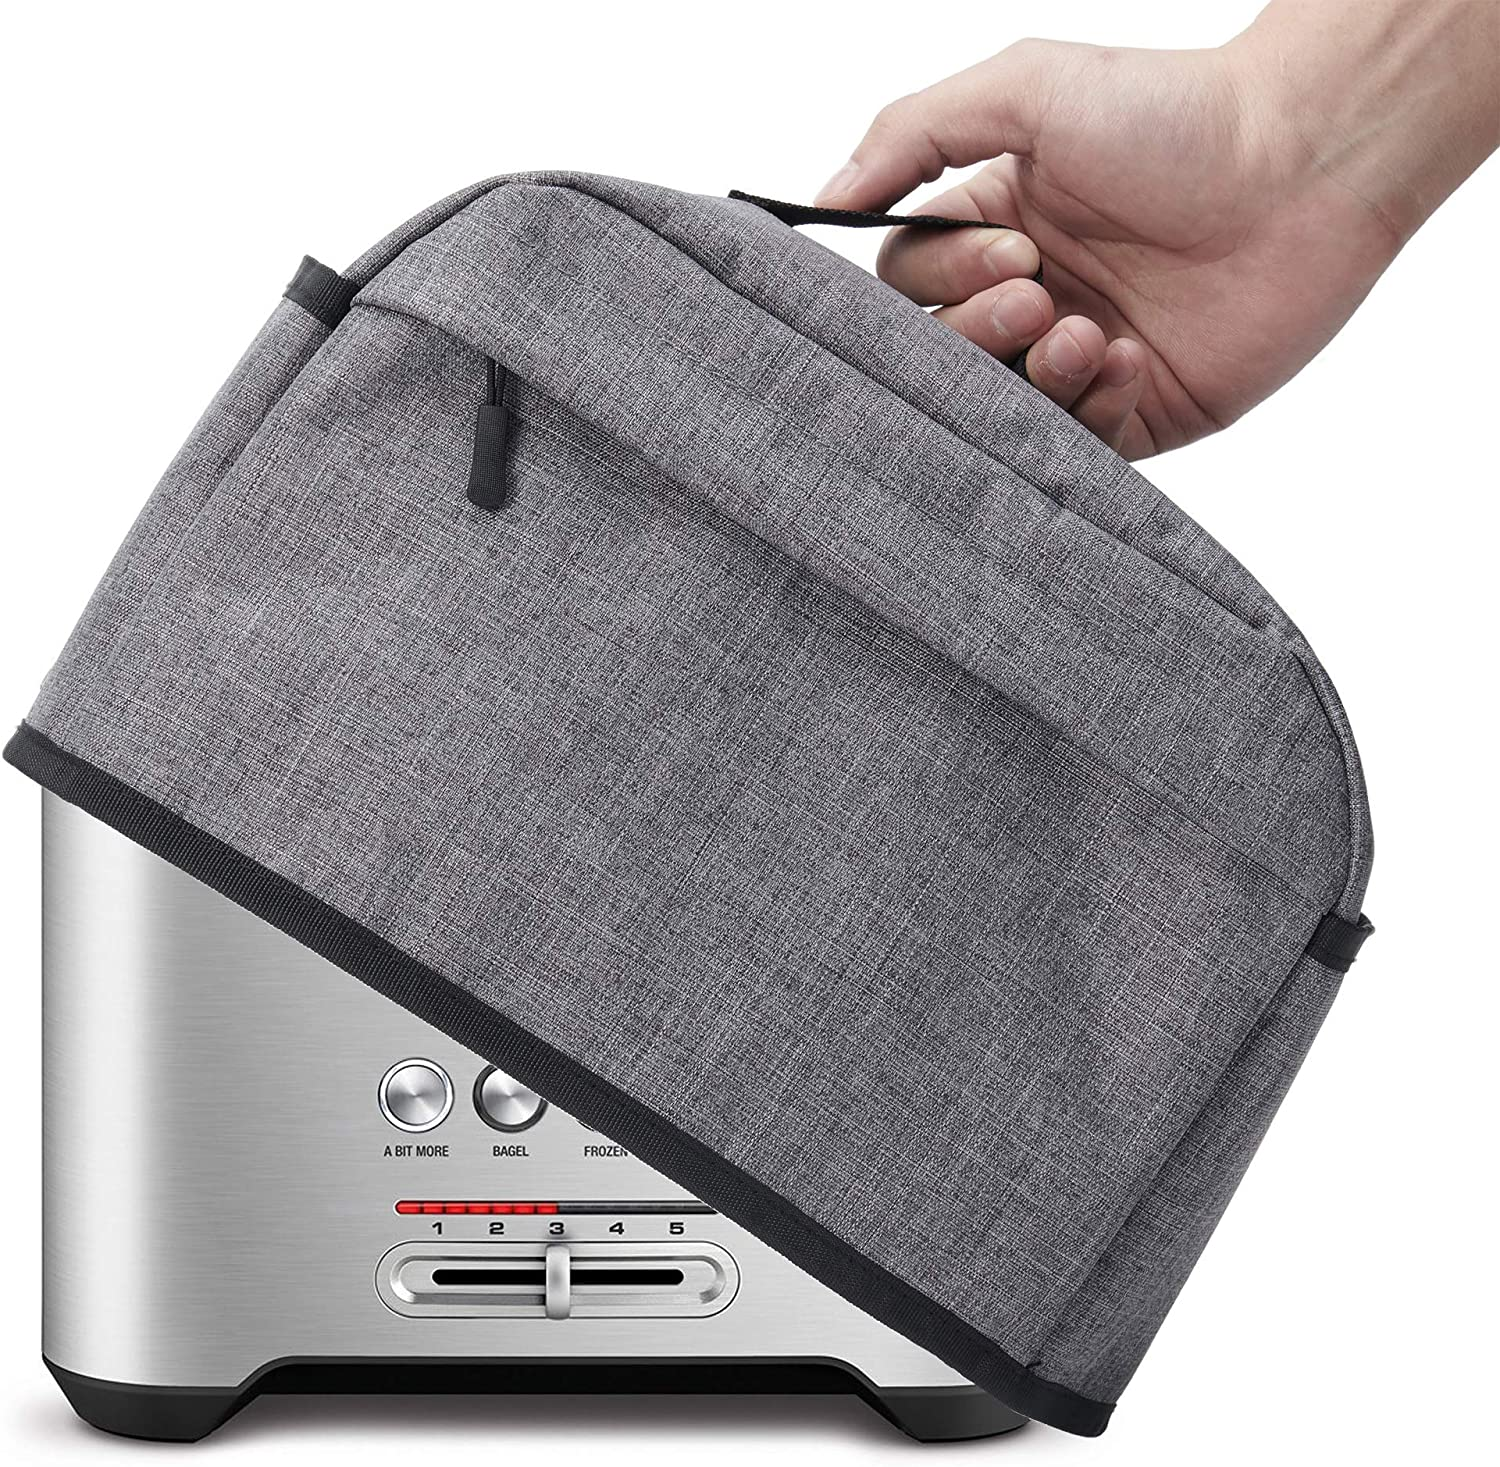 2 Slice Toaster Cover with Zipper & Open Pockets Kitchen Small Appliance Cover with Handle, Dust and Fingerprint Protection, Machine Washable, Grey